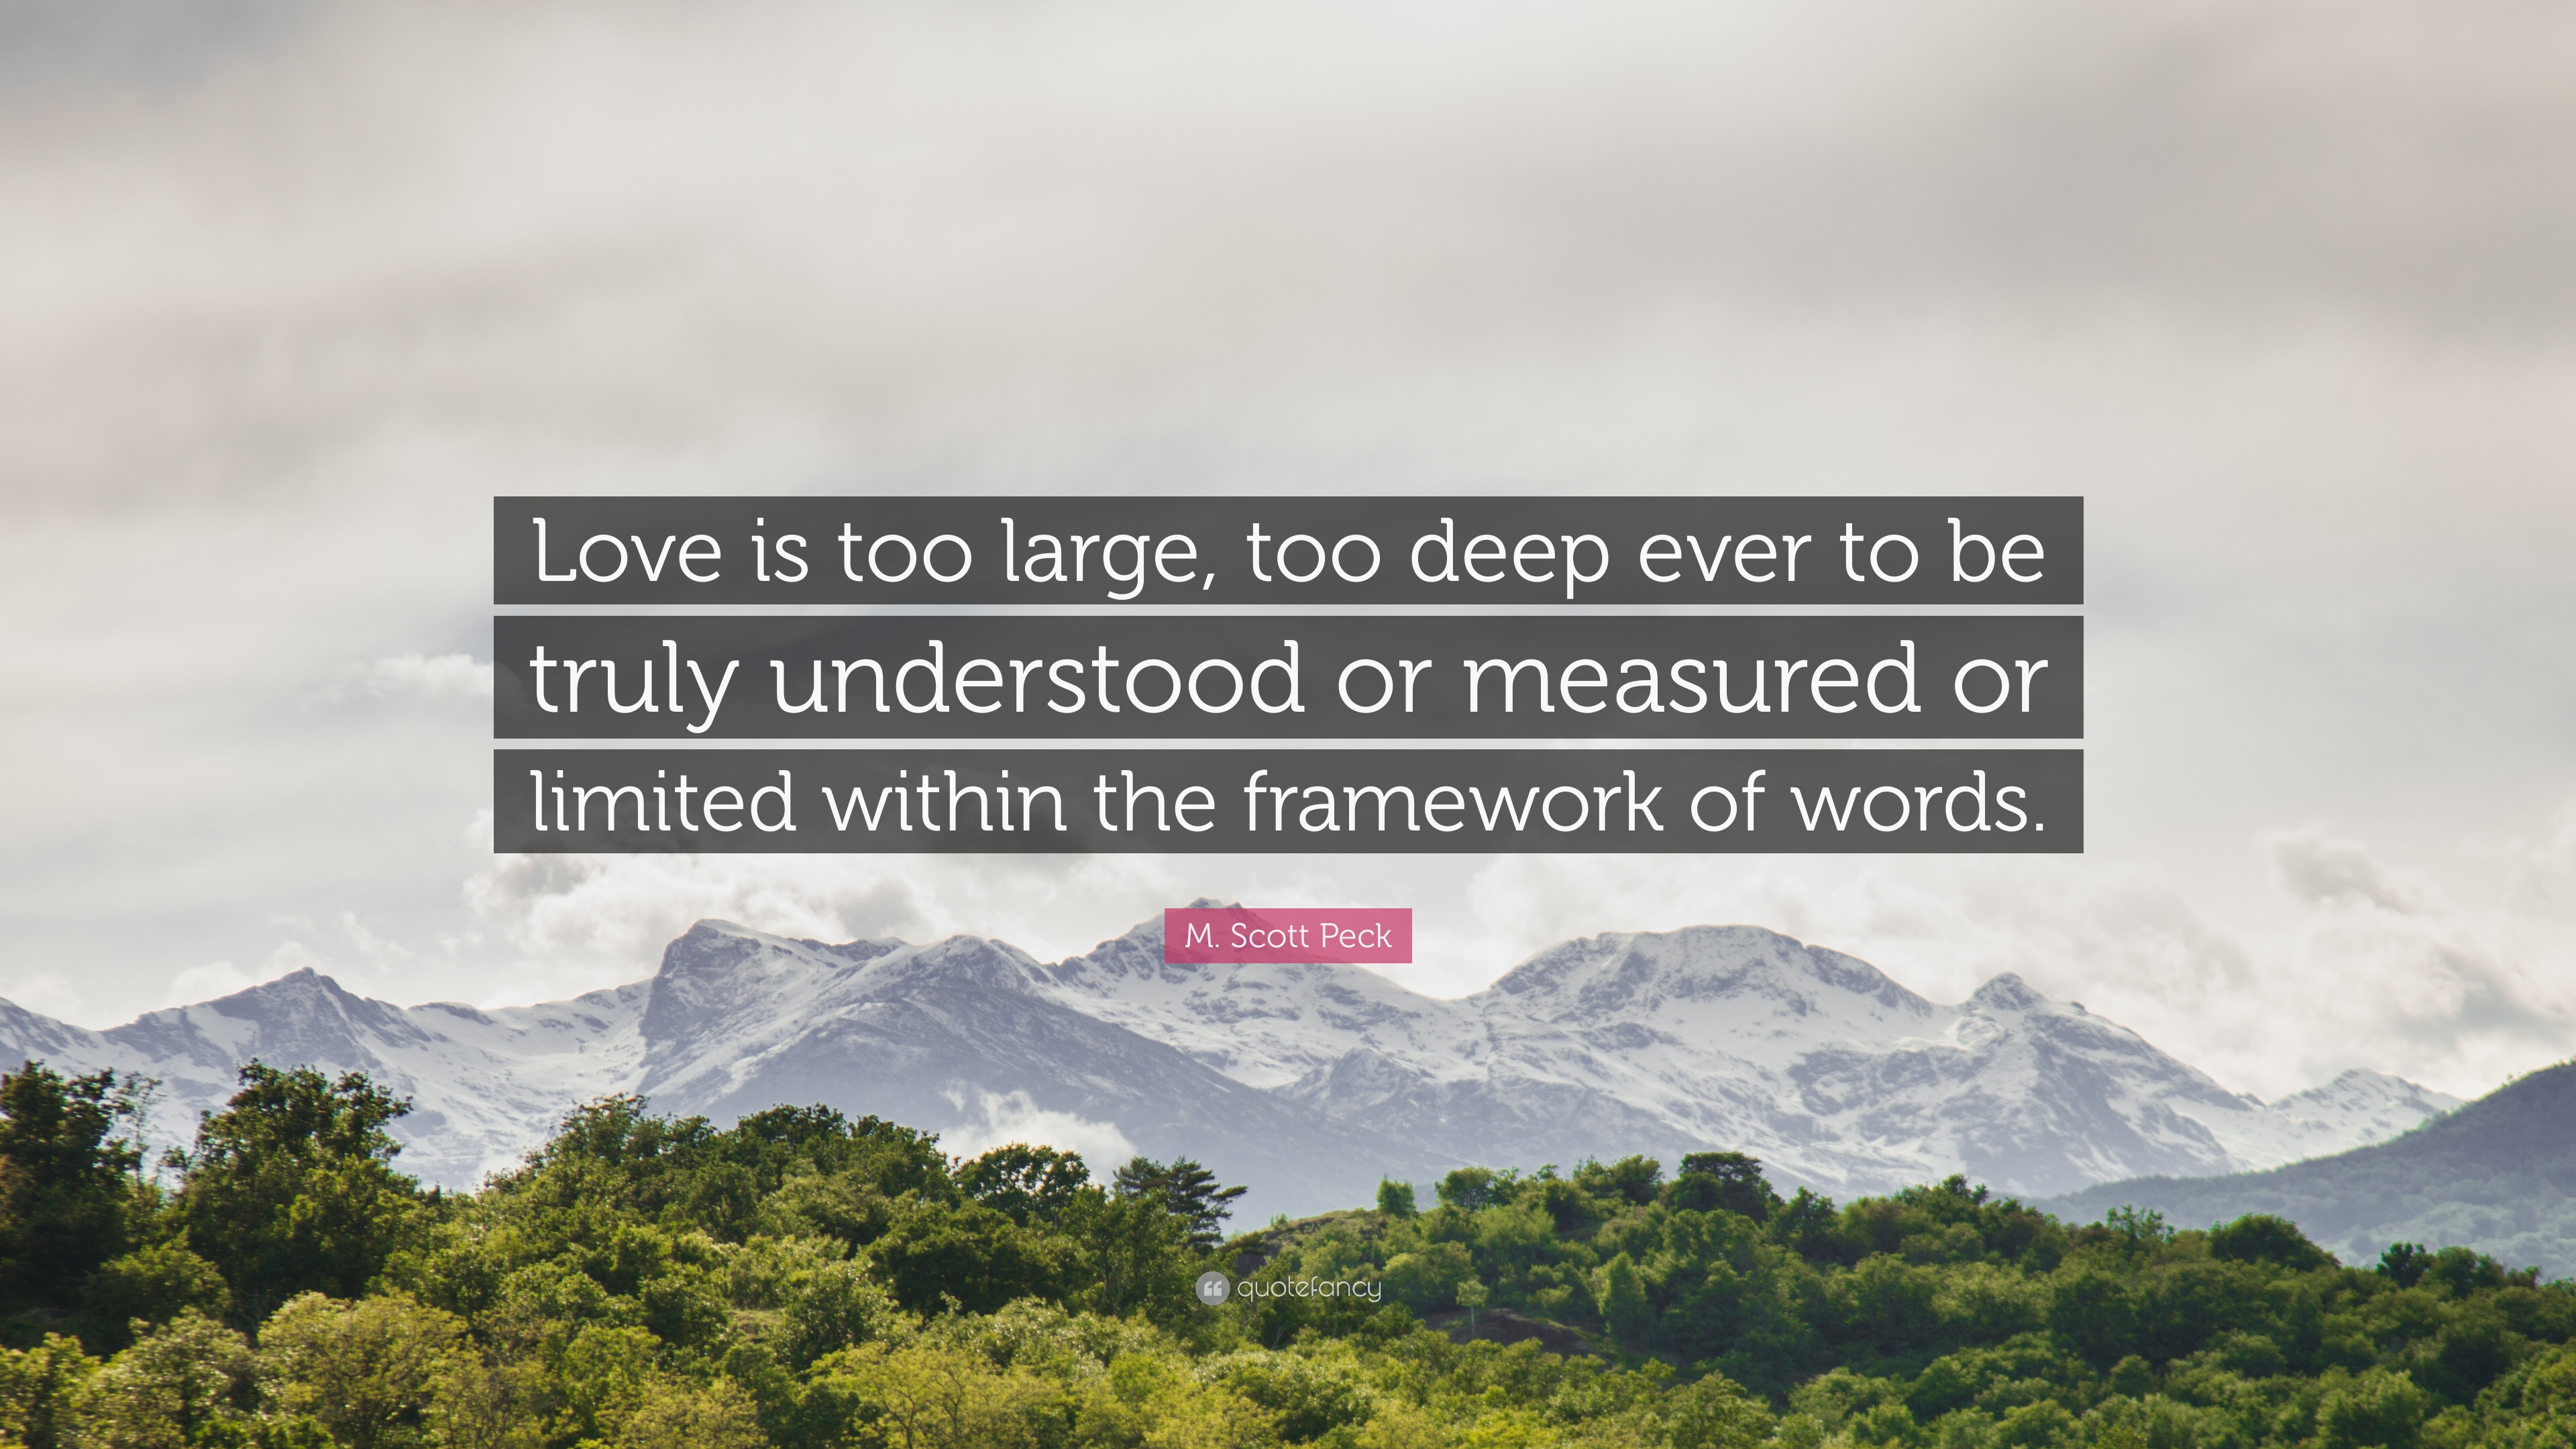 M scott peck quote love is too large too deep ever to be truly m scott peck quote love is too large too deep ever to thecheapjerseys Image collections